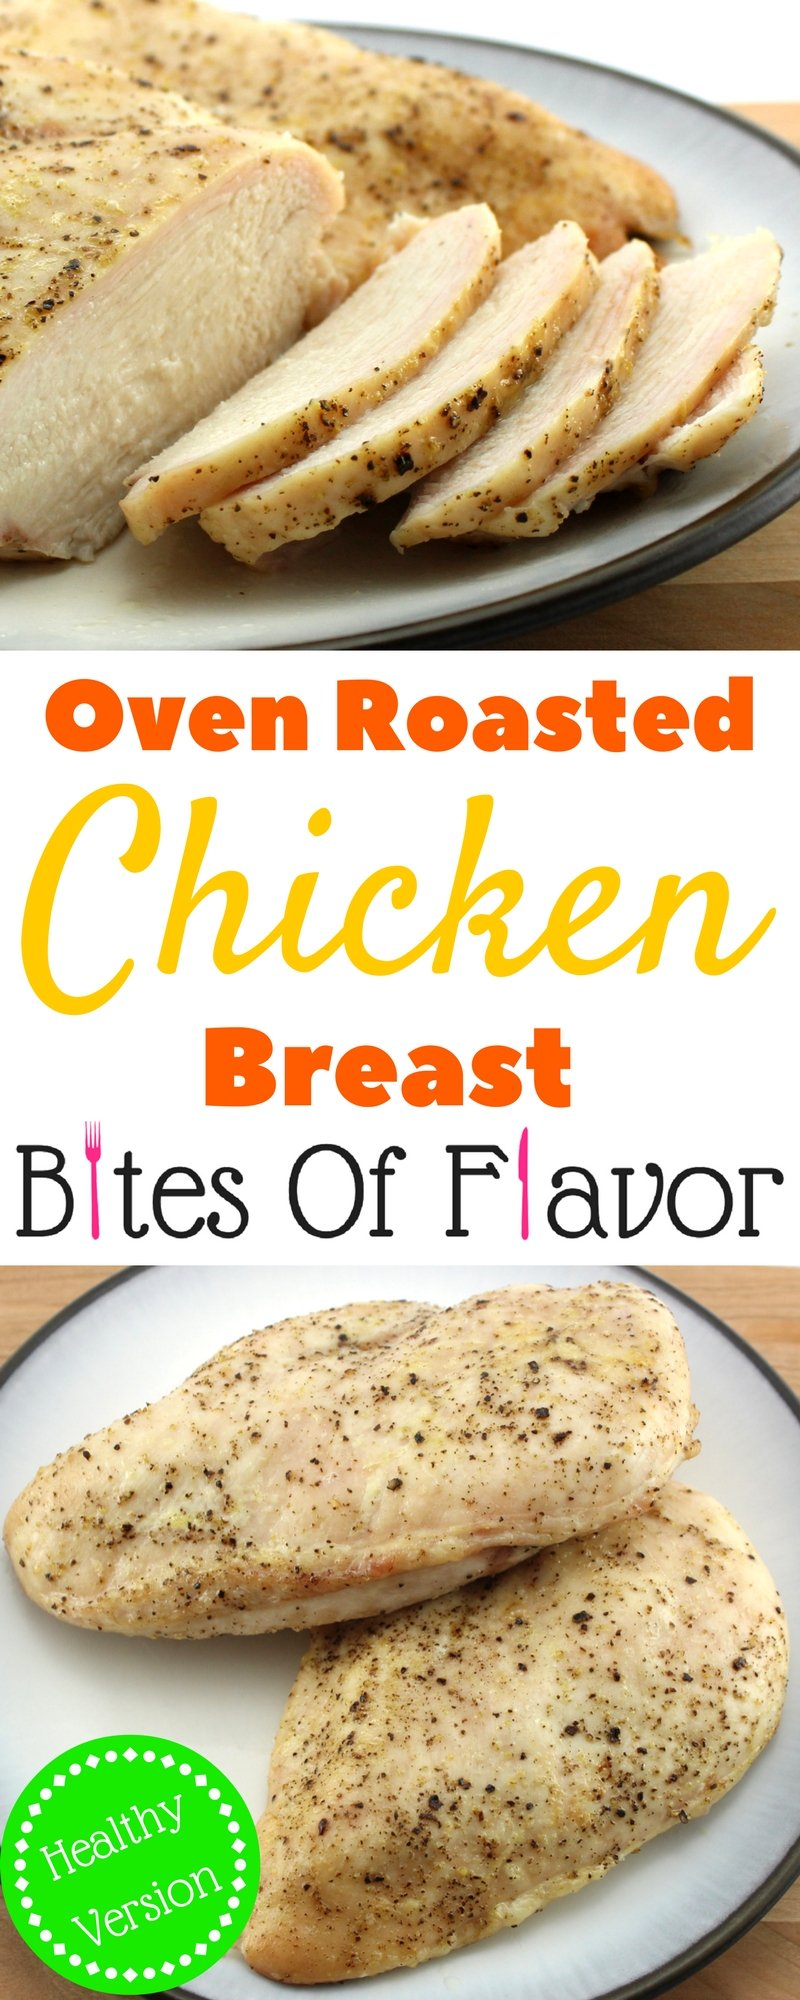 Oven Roasted Chicken Healthy Easy To Make And Delicious Great For Salads Or Any Other Recipe 2 Smartpoints Per Serving Weight Watcher Friendly